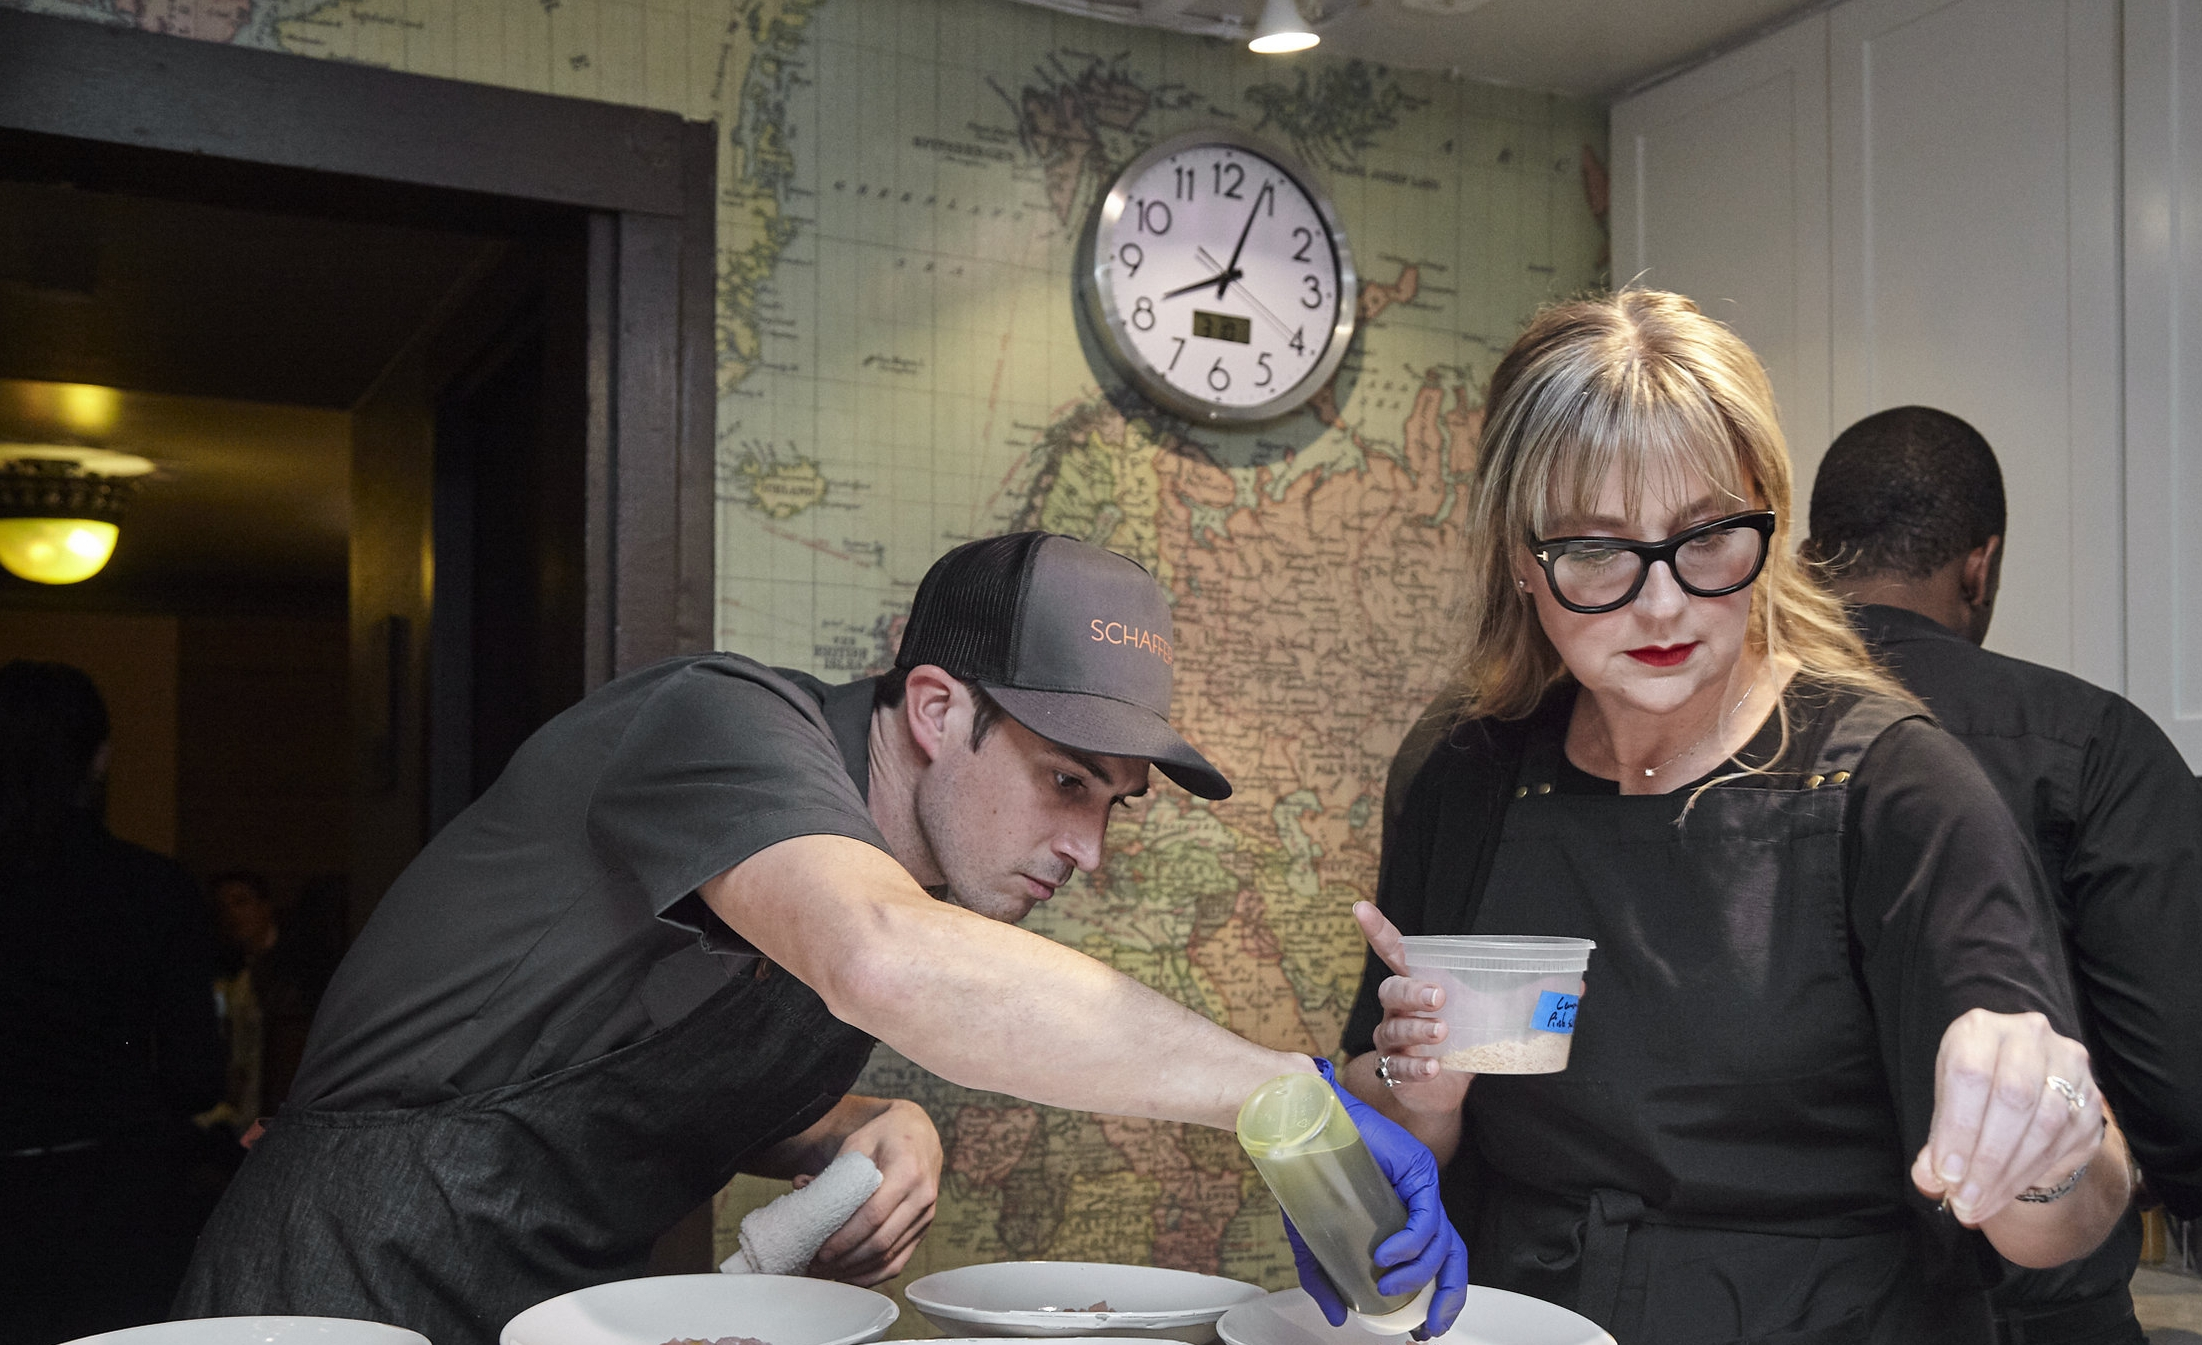 Kathleen Schaffer and her crew plating up some Cricket Hummus for a sold out dinner at  The James Beard House  in NYC March 2018.